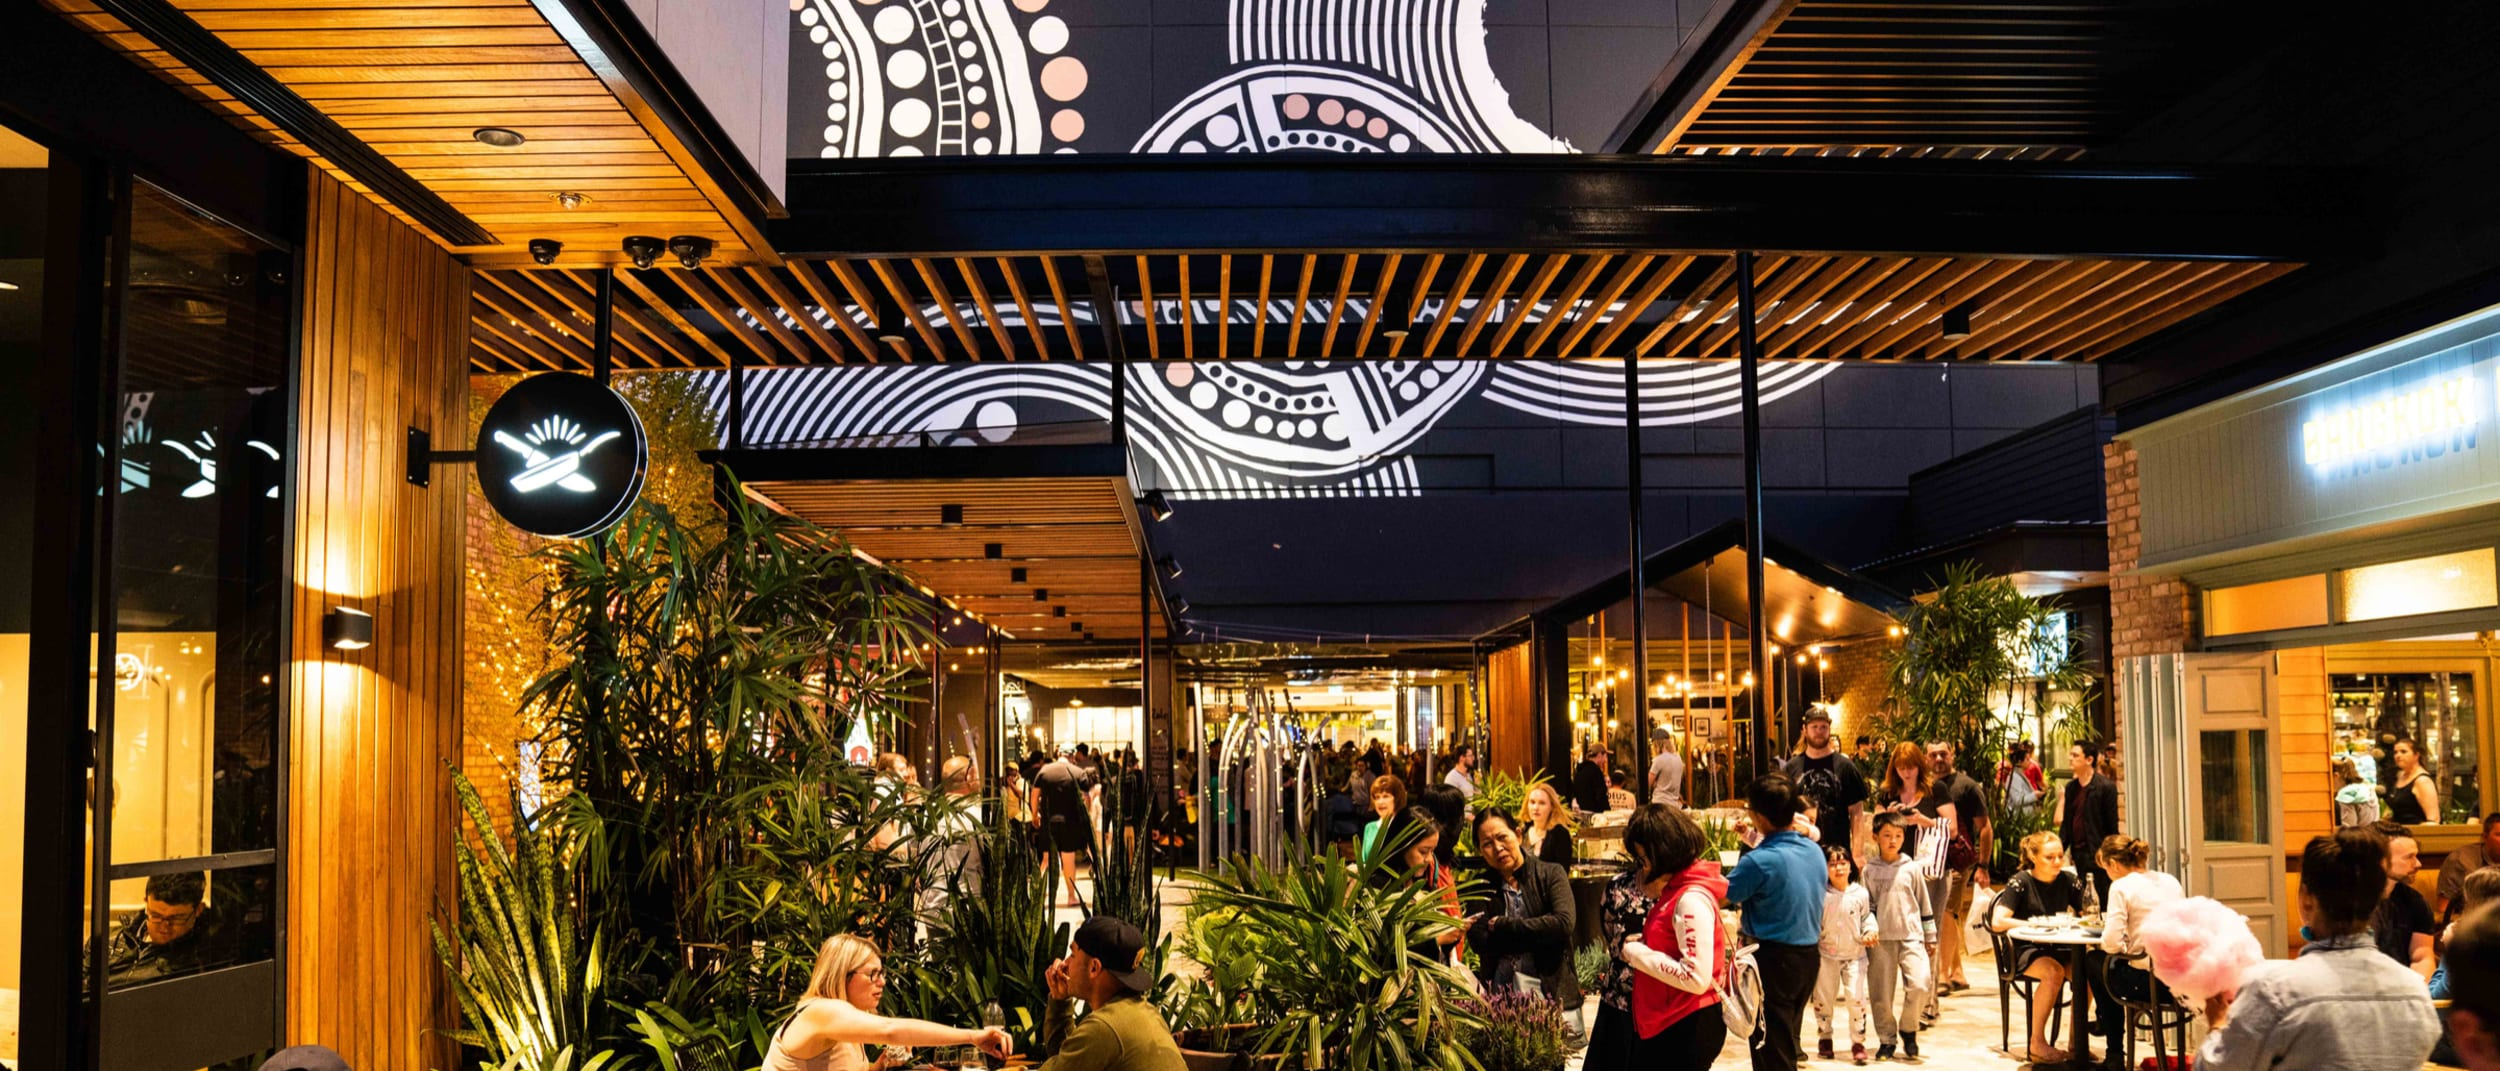 Your Dining Hub turns 1